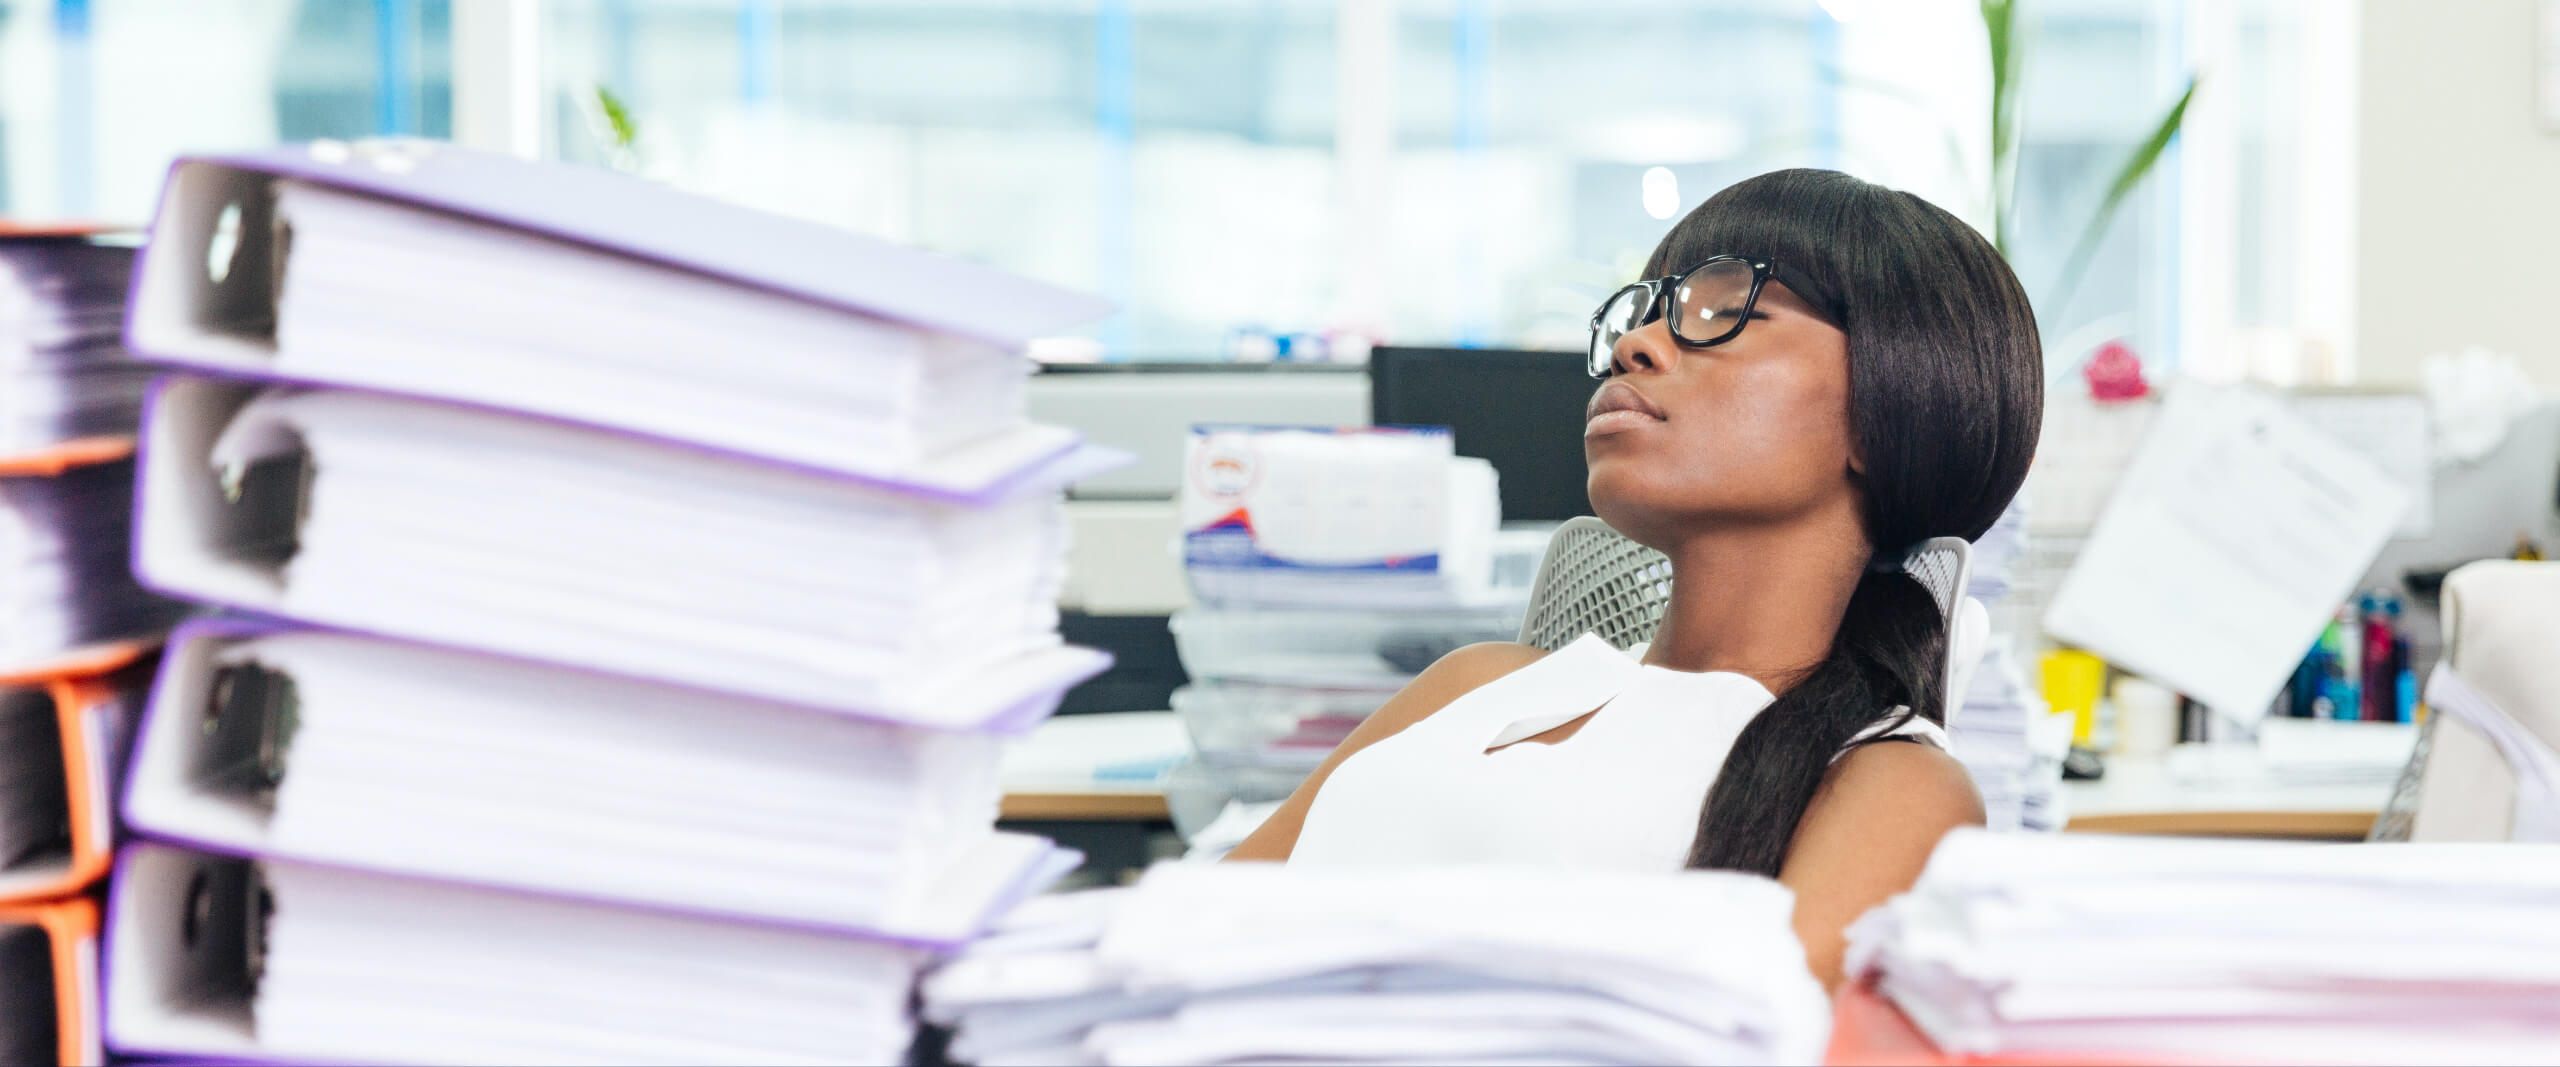 Woman sighing with eyes closed at her desk with an overwhelming amount of binders and paperwork